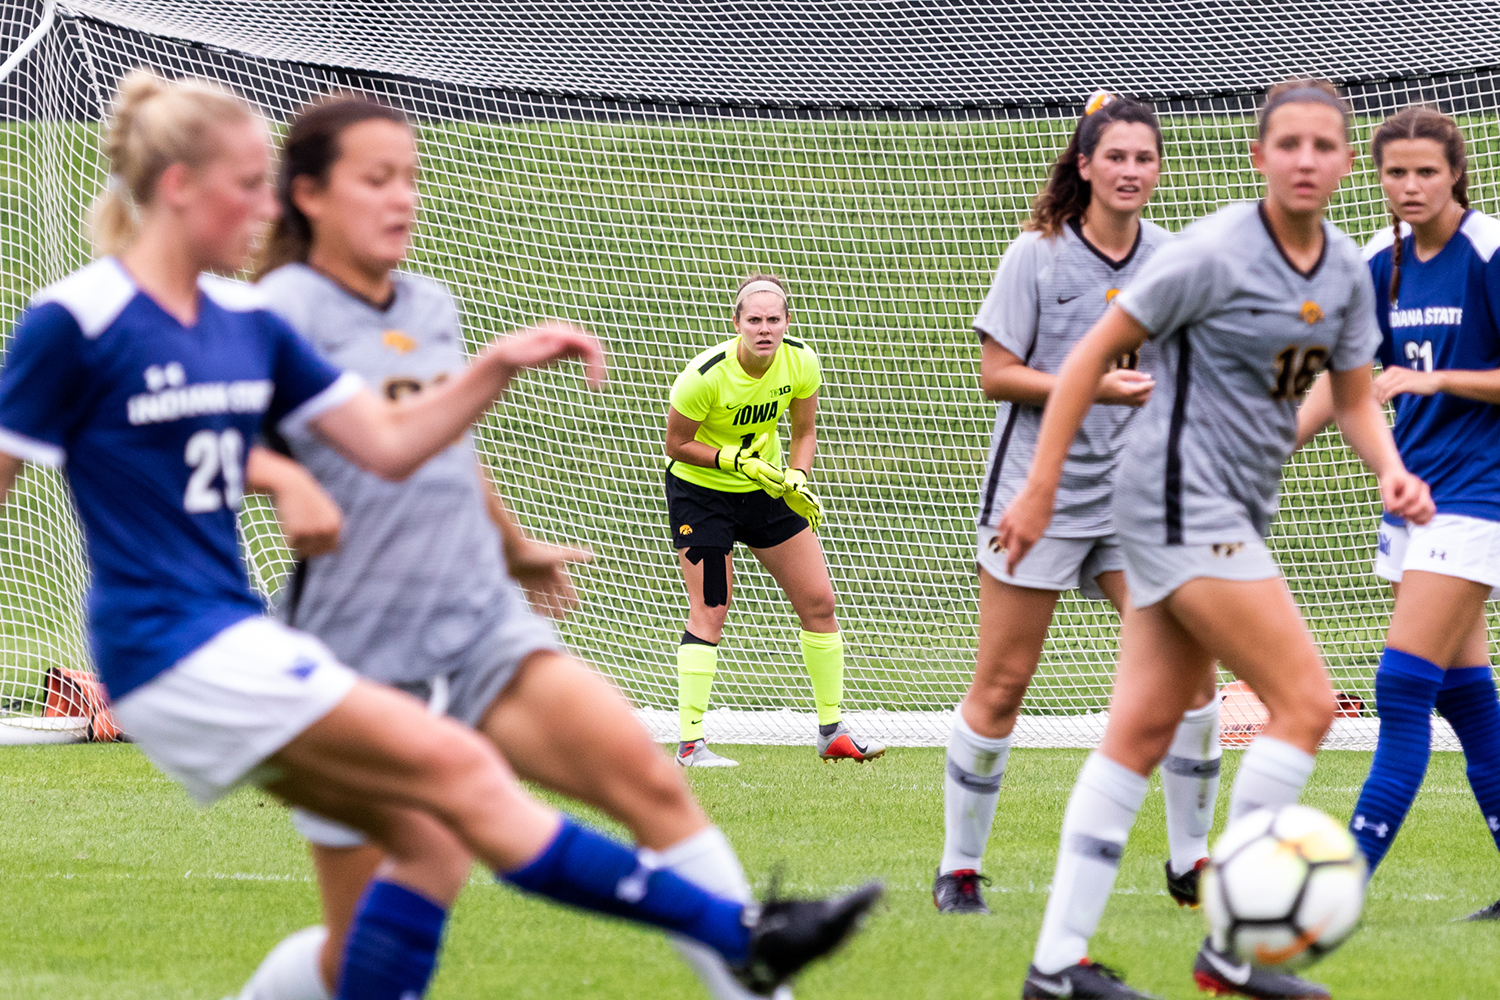 University of Iowa soccer player Claire Graves watches the action from her goal line during a game against Indiana State University on Sunday, Aug. 26, 2018. The Hawkeyes defeated the Sycamores 1-0.